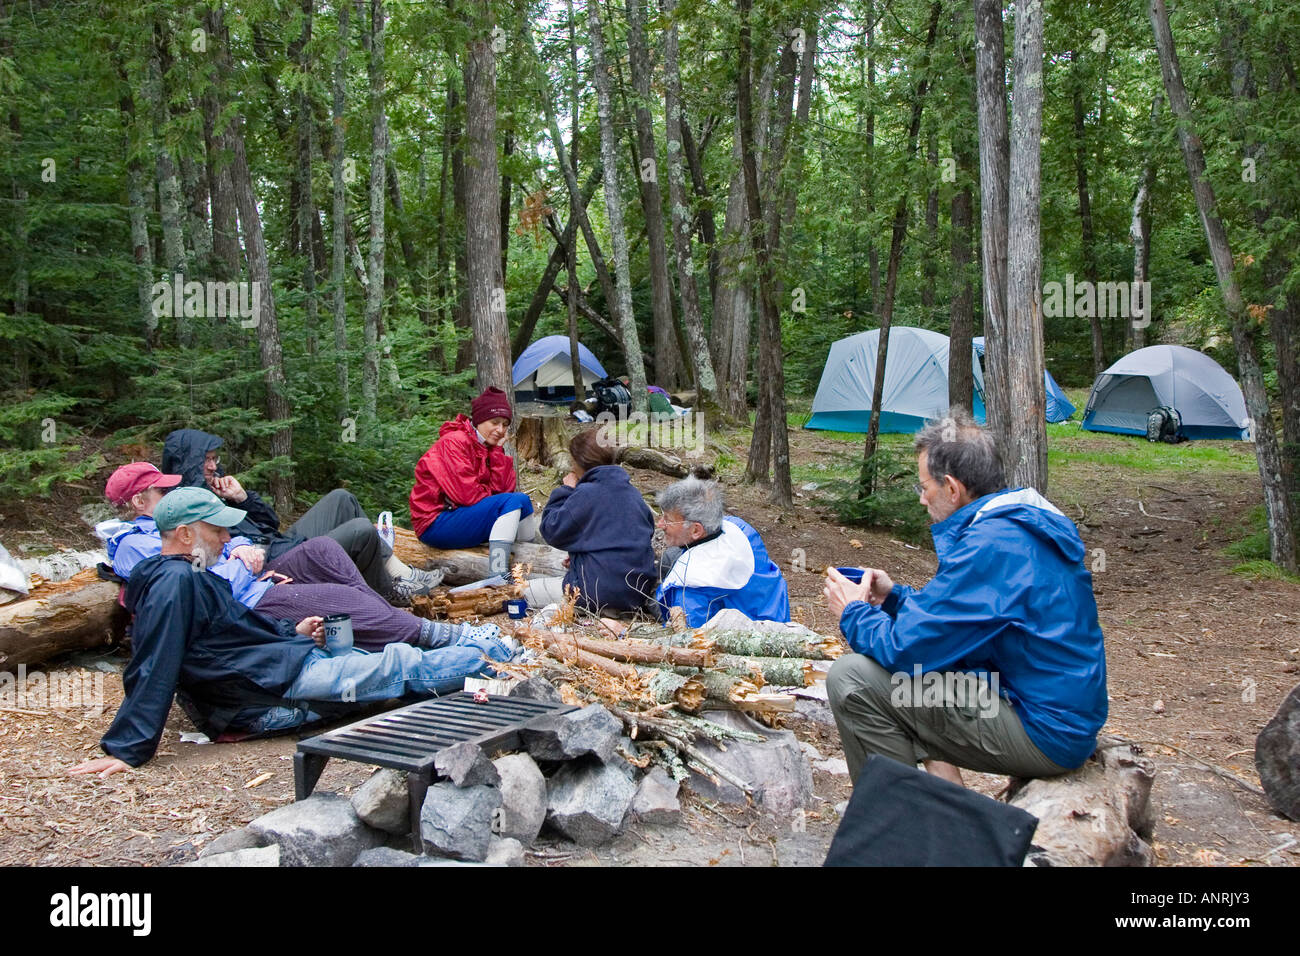 Boundary Waters Canoe Area Wilderness Minnesota Campers relax after dinner at a campsite on Sucker Lake - Stock Image